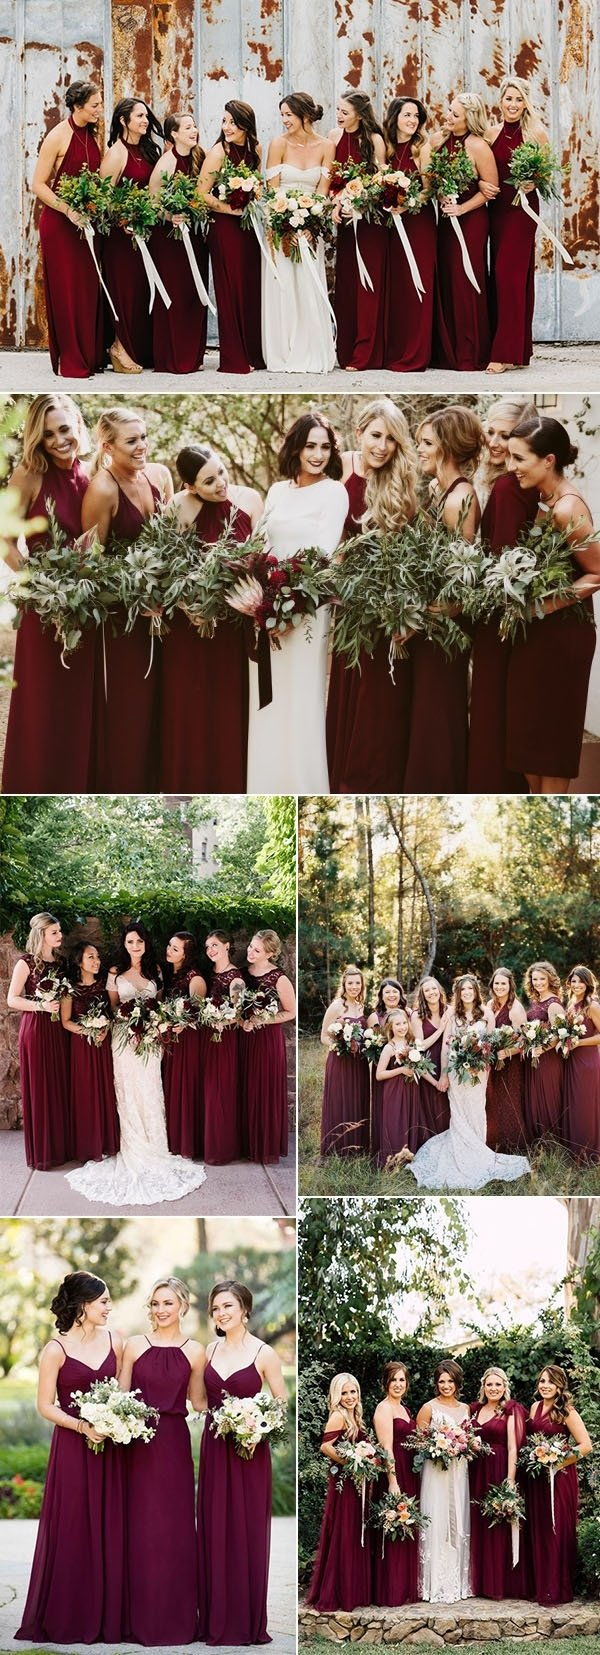 10 Amazing Wedding Color Ideas For Fall 50 refined burgundy and marsala wedding color ideas for fall brides 2020